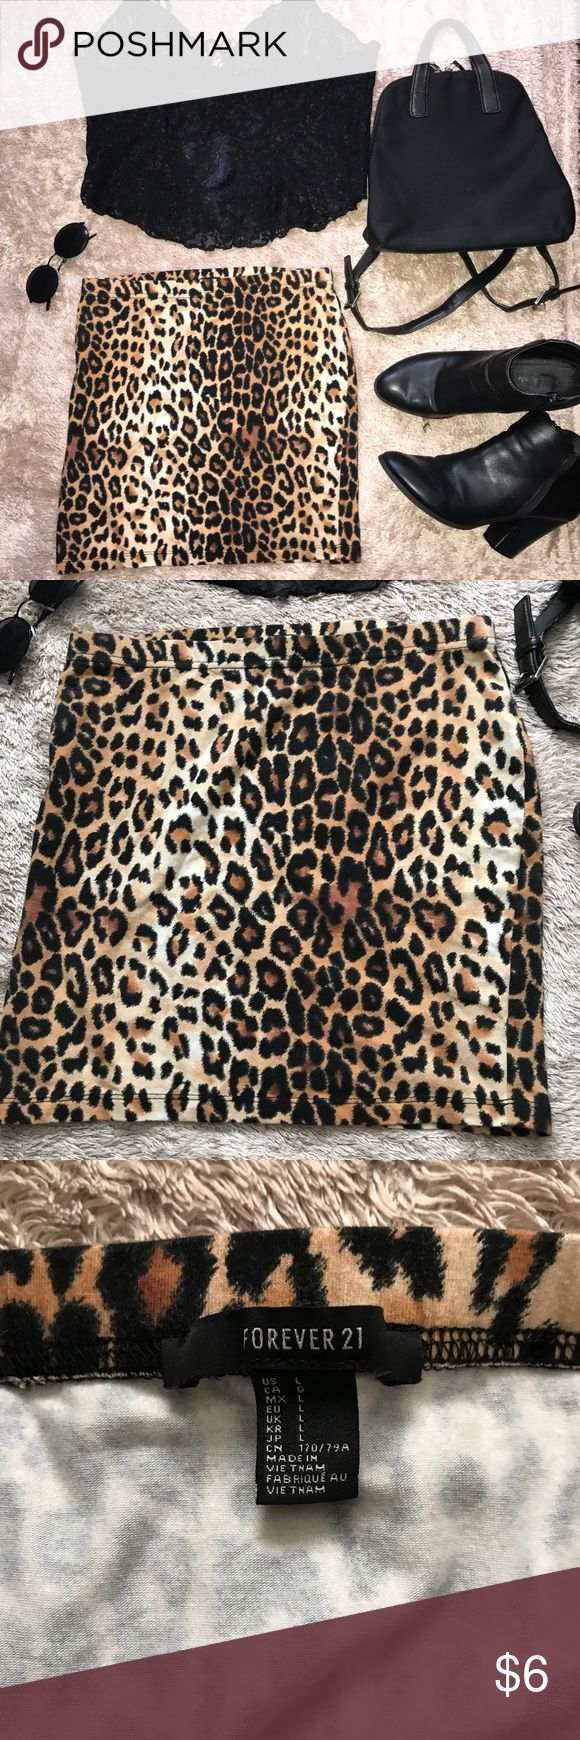 Animal Print Skirt Cute and trendy leopard skirt. No flaws.       #cheetah #cute #fall #fallfashion #outfit Forever 21 Skirts